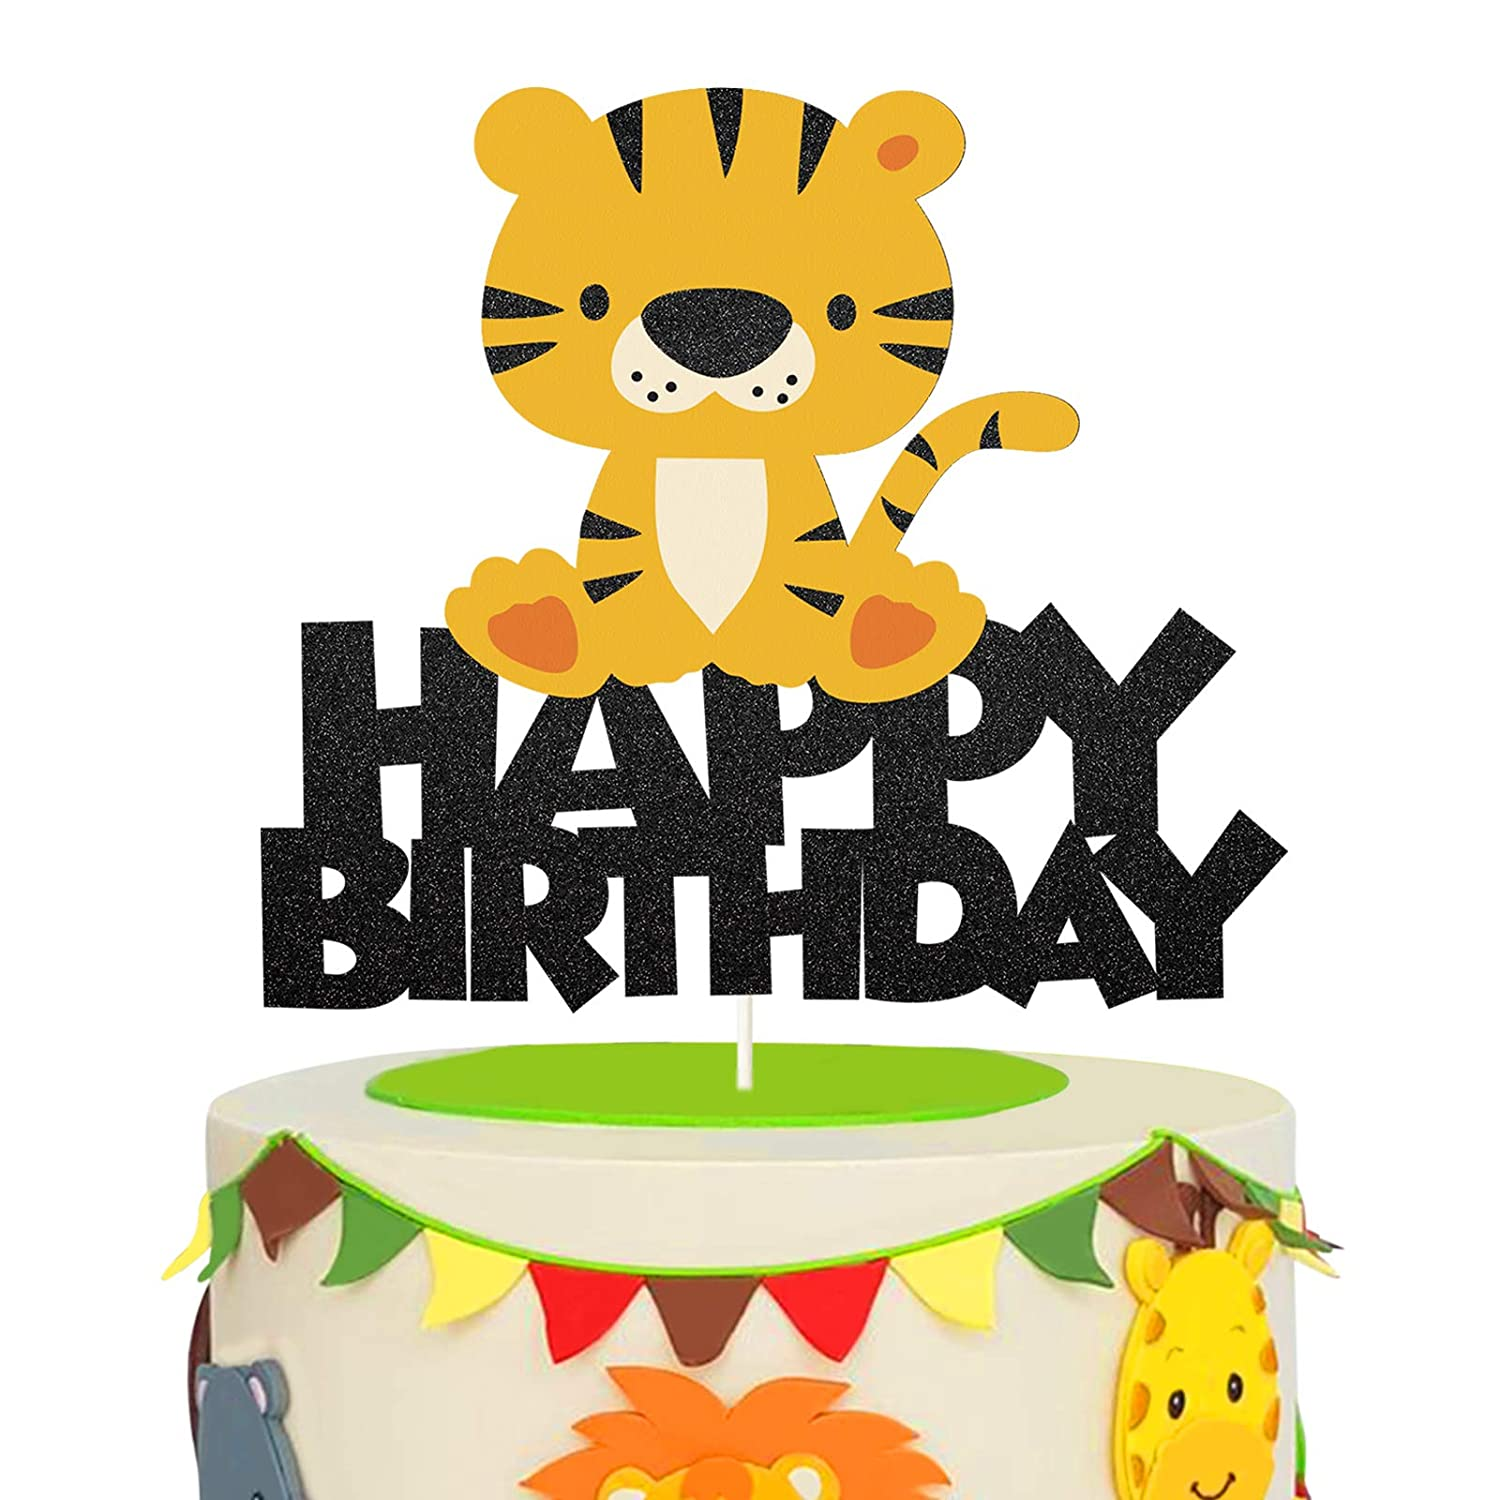 Glitter Tiger Happy Birthday Cake Topper,Safari Jungle Animal Themed Cake Decor for Baby Shower or Kids Birthday Party Decor Supplies